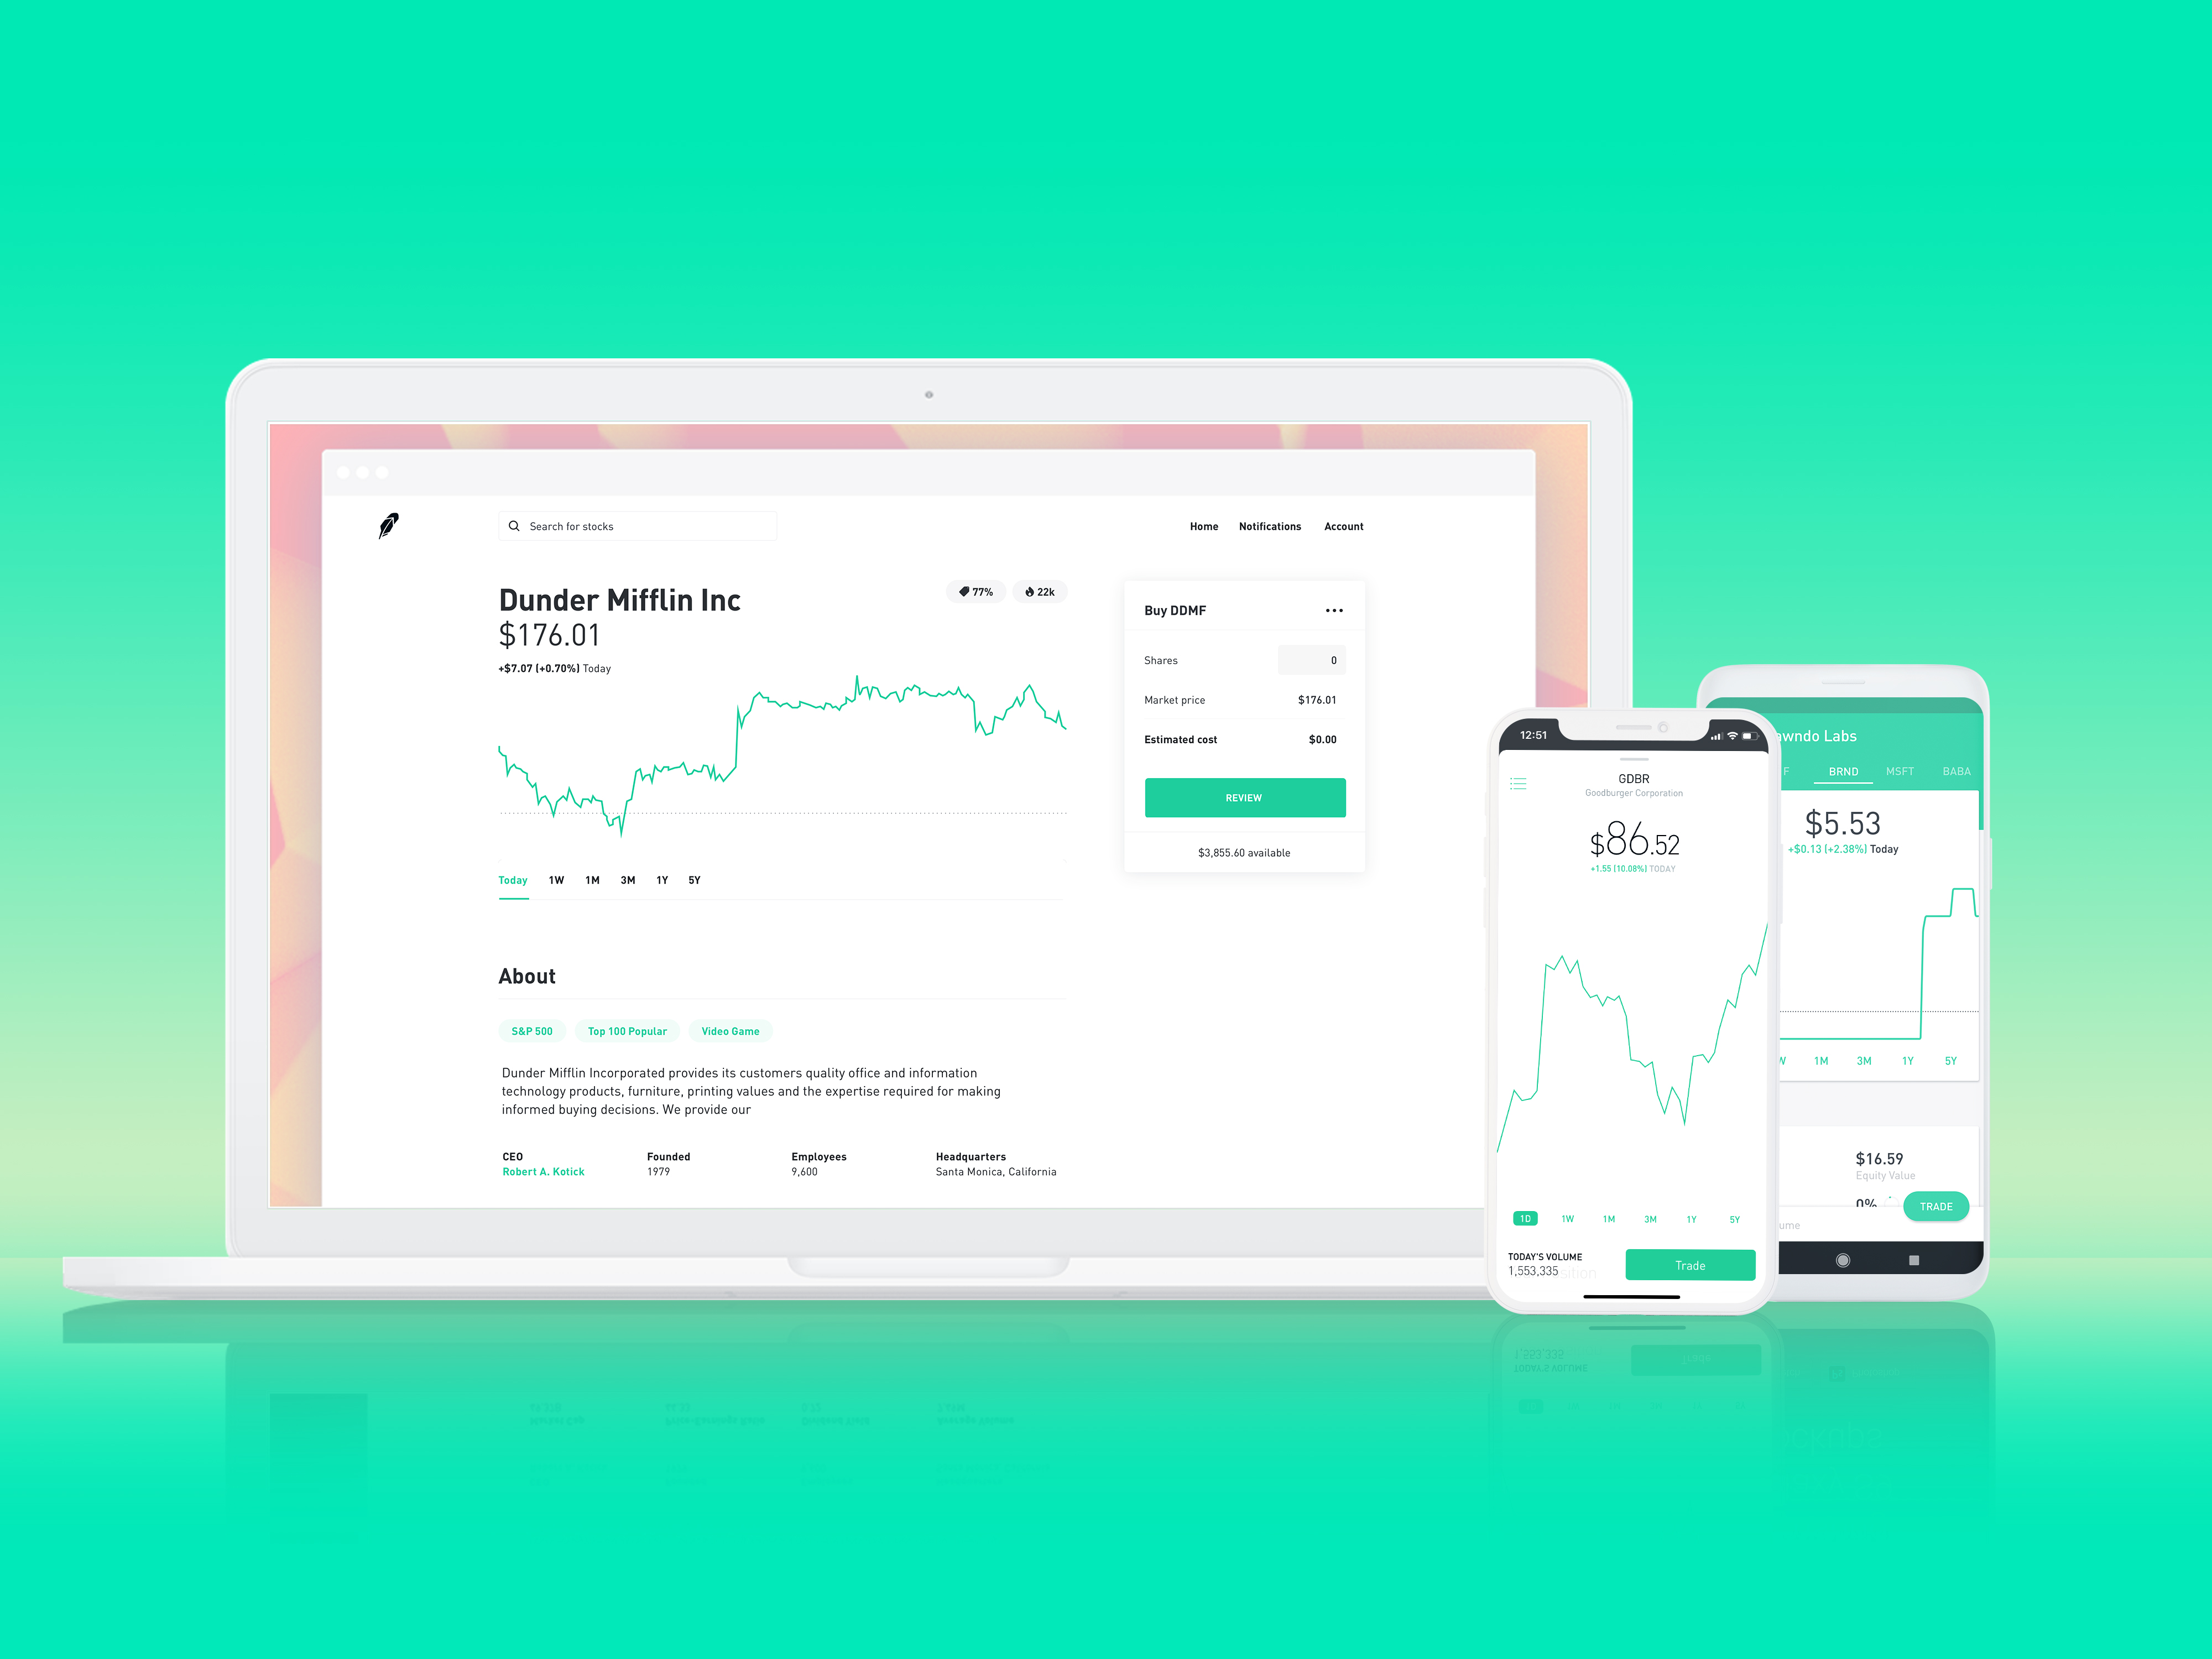 kraken trade review crypto stock trade app robinhood raising at $5b+ up 4x in a year